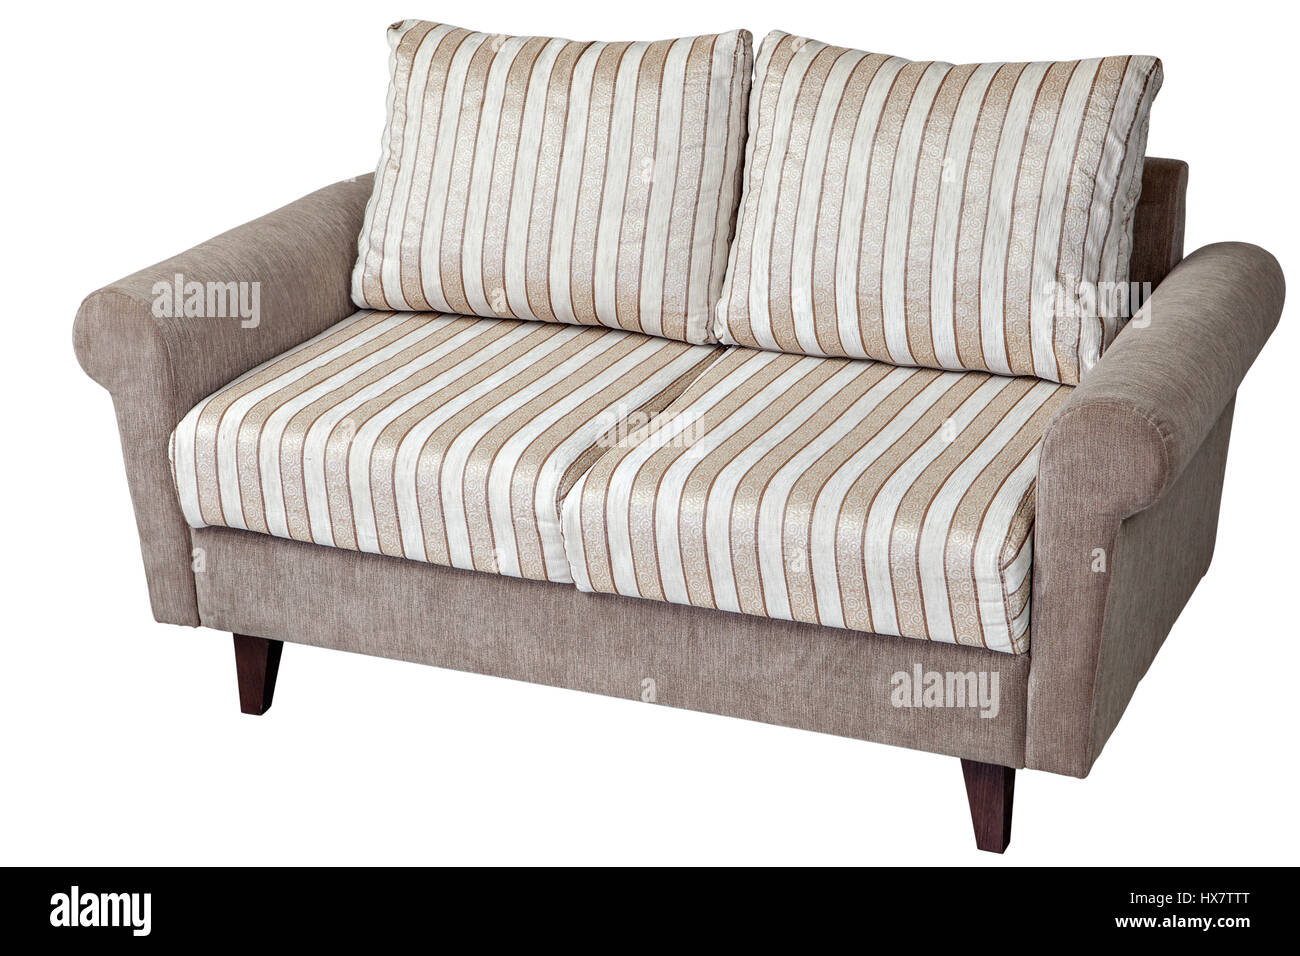 Two Seater Modern Sofa Upholstered In Fabric With Pillows In Striped  Material, Isolated On White Background With Clipping Path.